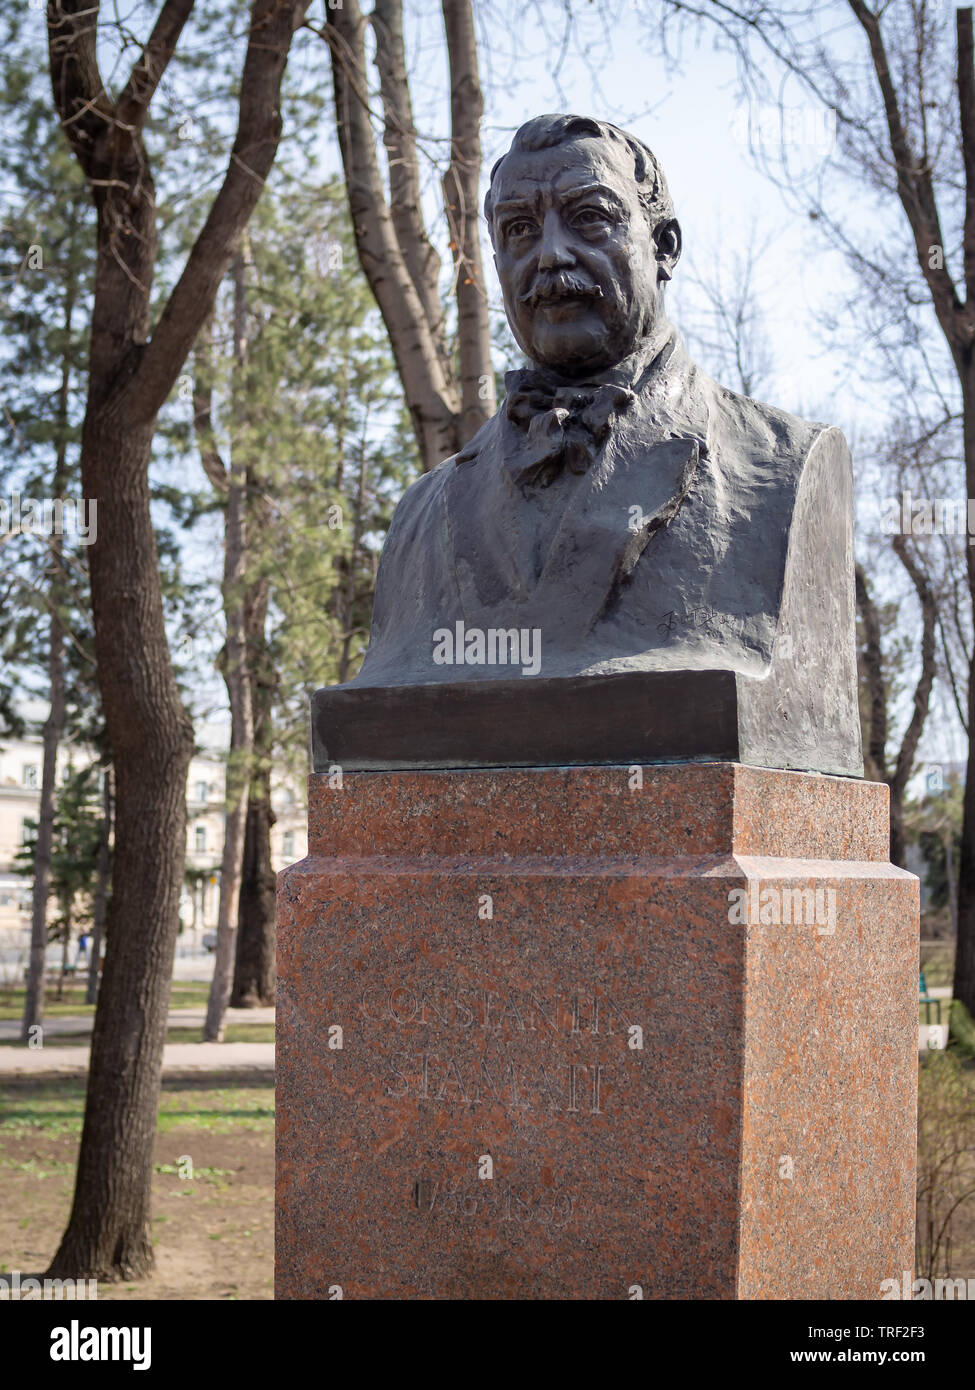 CHISINAU, MOLDOVA-MARCH 21, 2019:  Constantin Stamati bust by Leonid Fitov in the Alley of Classics - Stock Image